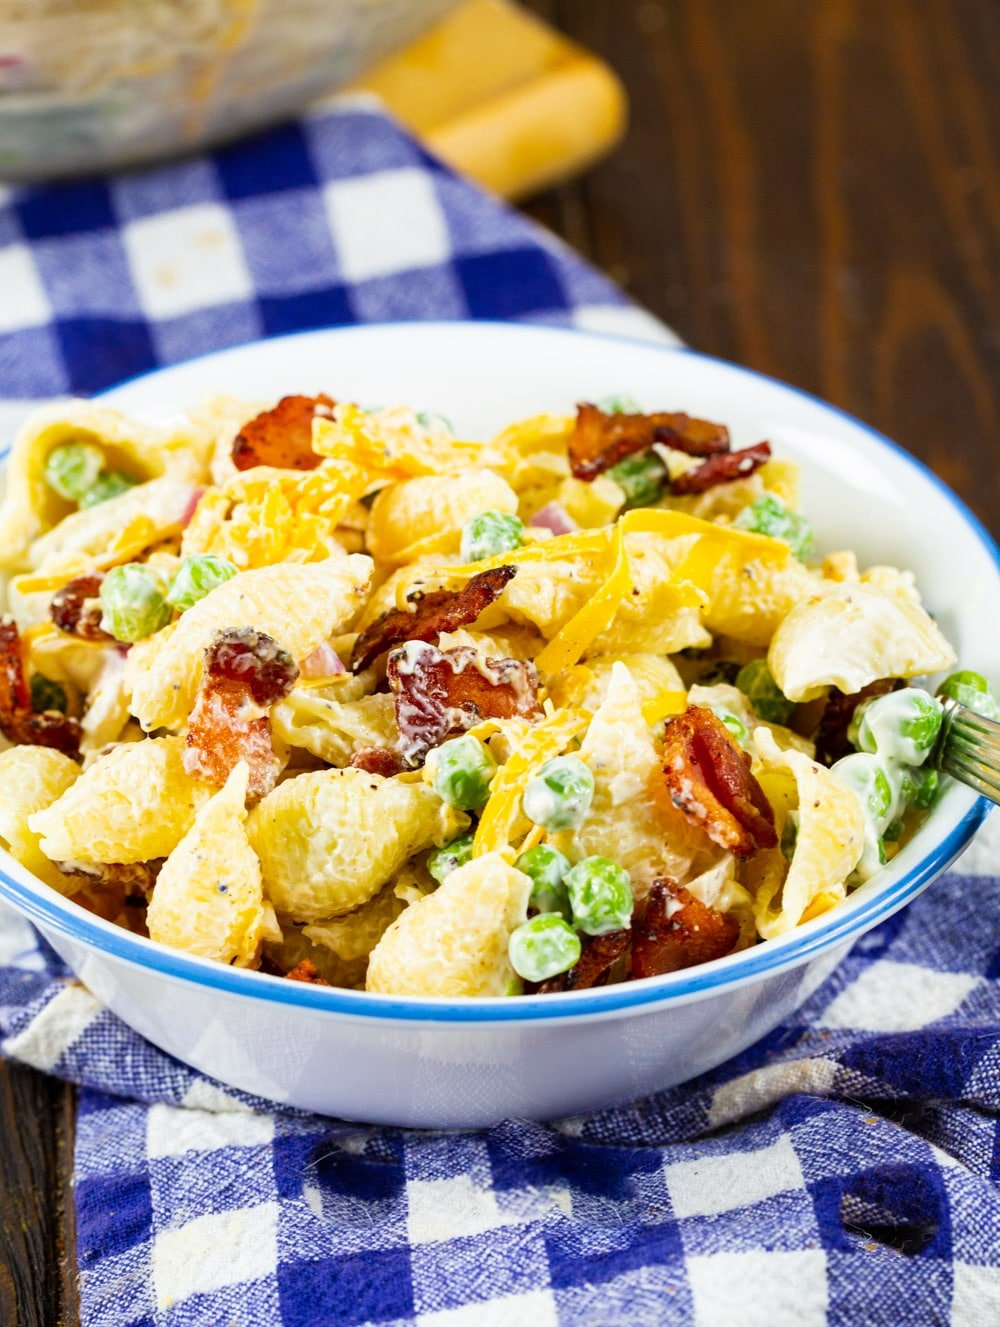 Creamy Pasta Salad with Peas and Bacon in a small bowl.